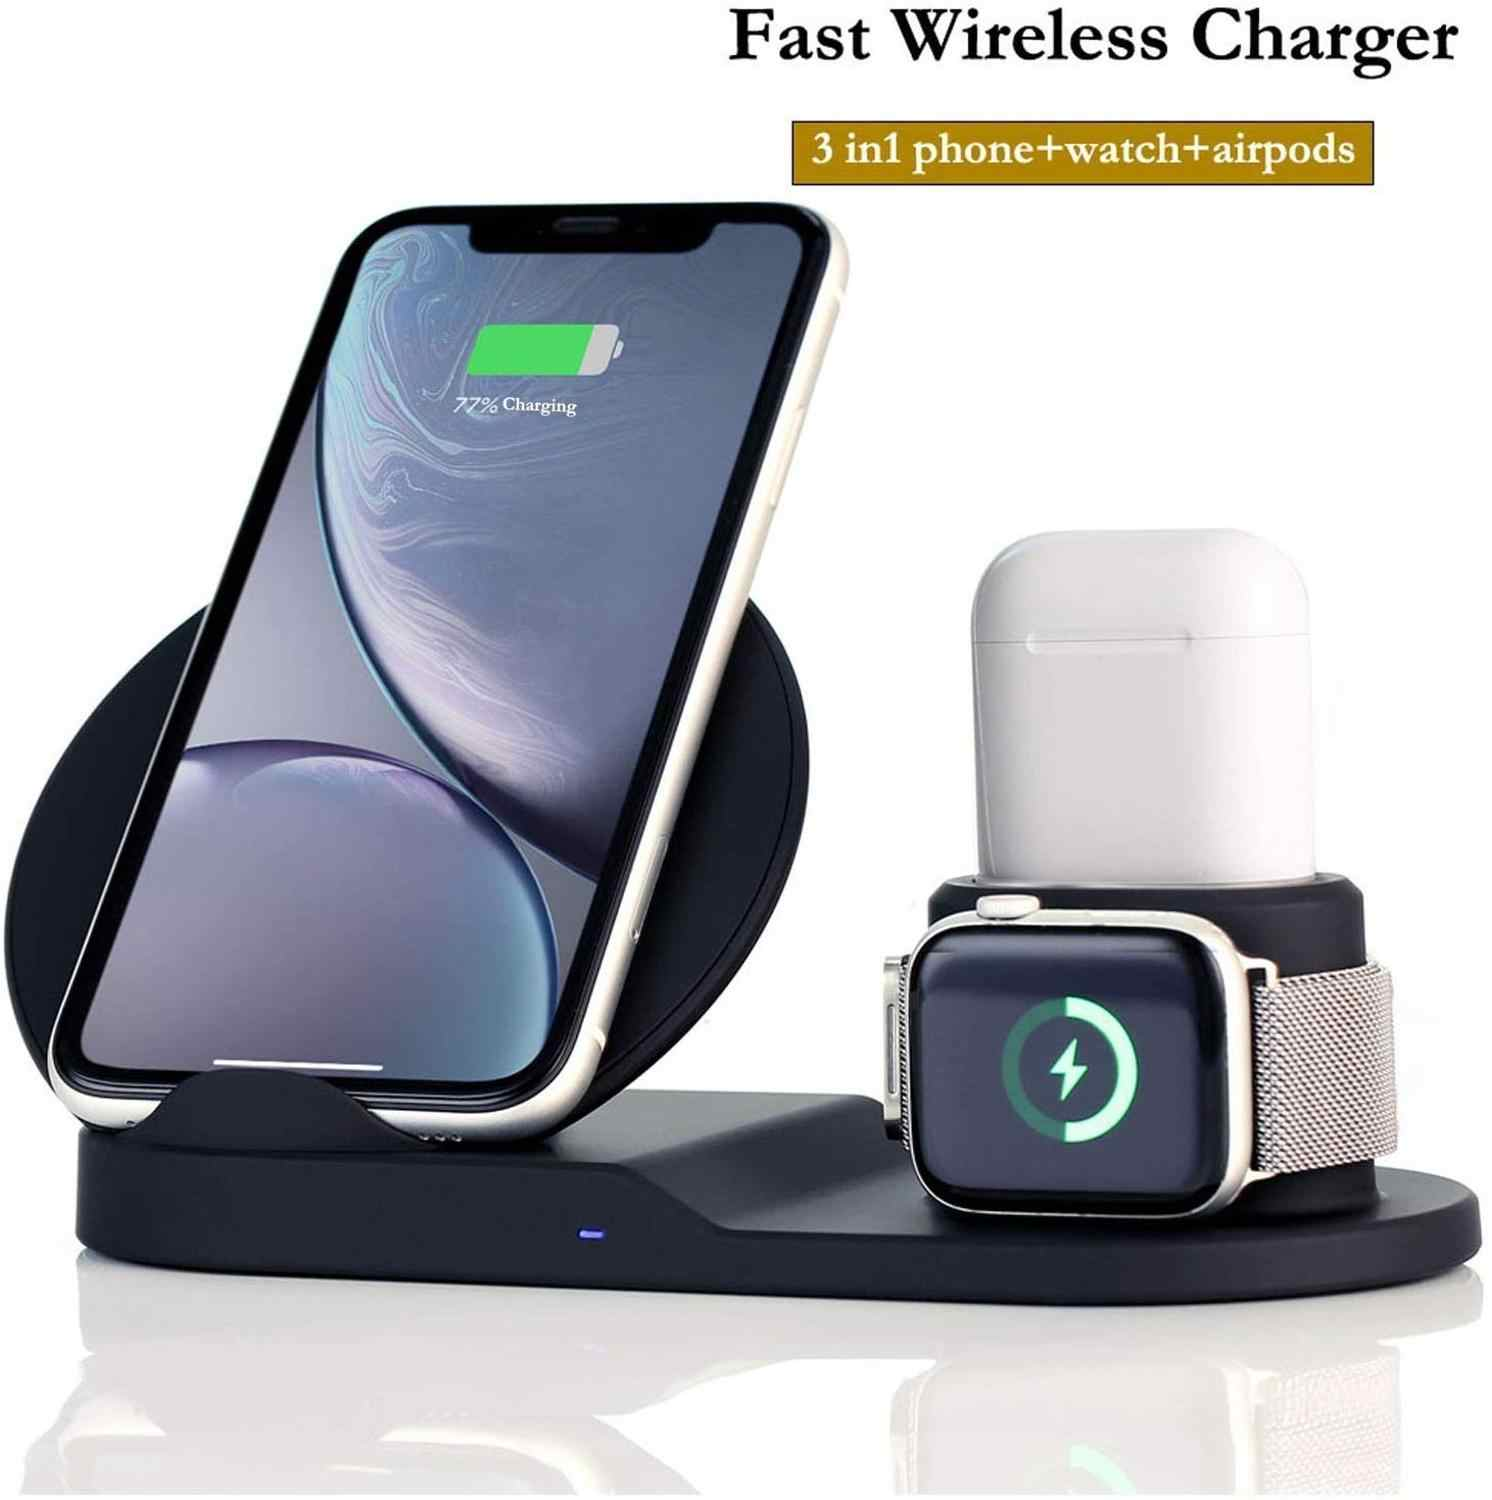 Craze 10W 3 in 1 Fast Wireless Charger Base Dock Station For iPhone XR XS Max 8 Quick Charging for Apple Watch 2 3 4 AirPods